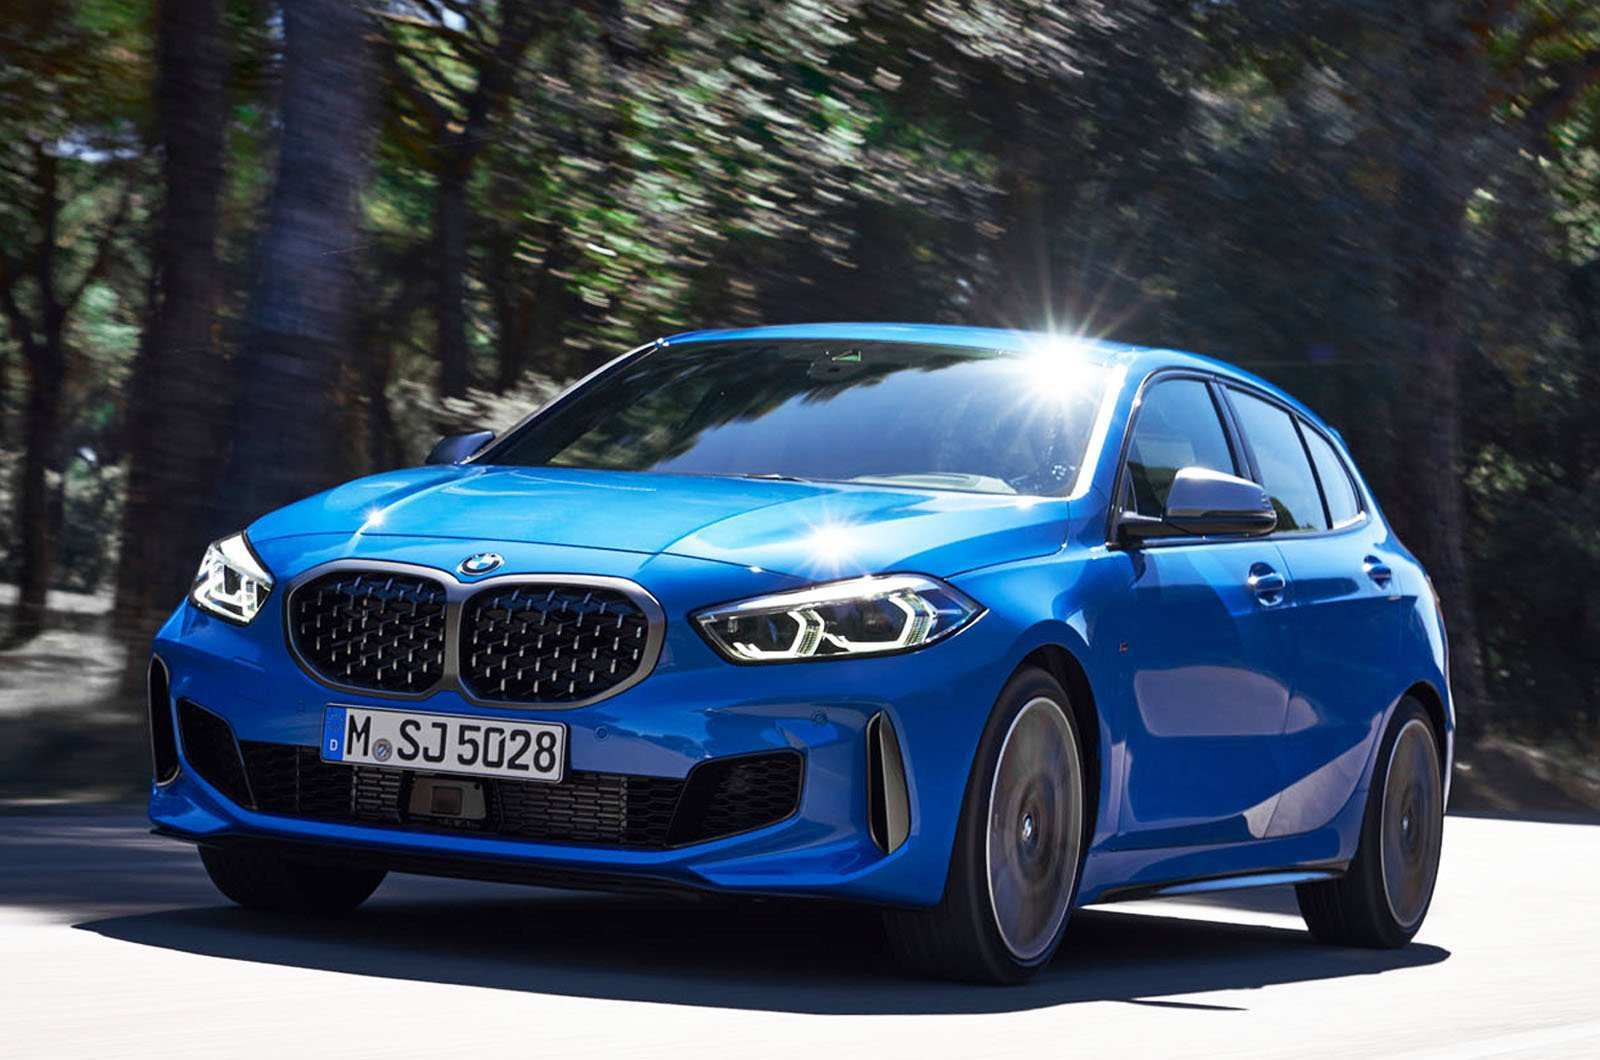 33 Gallery of BMW Releases 2020 Pricing for BMW Releases 2020